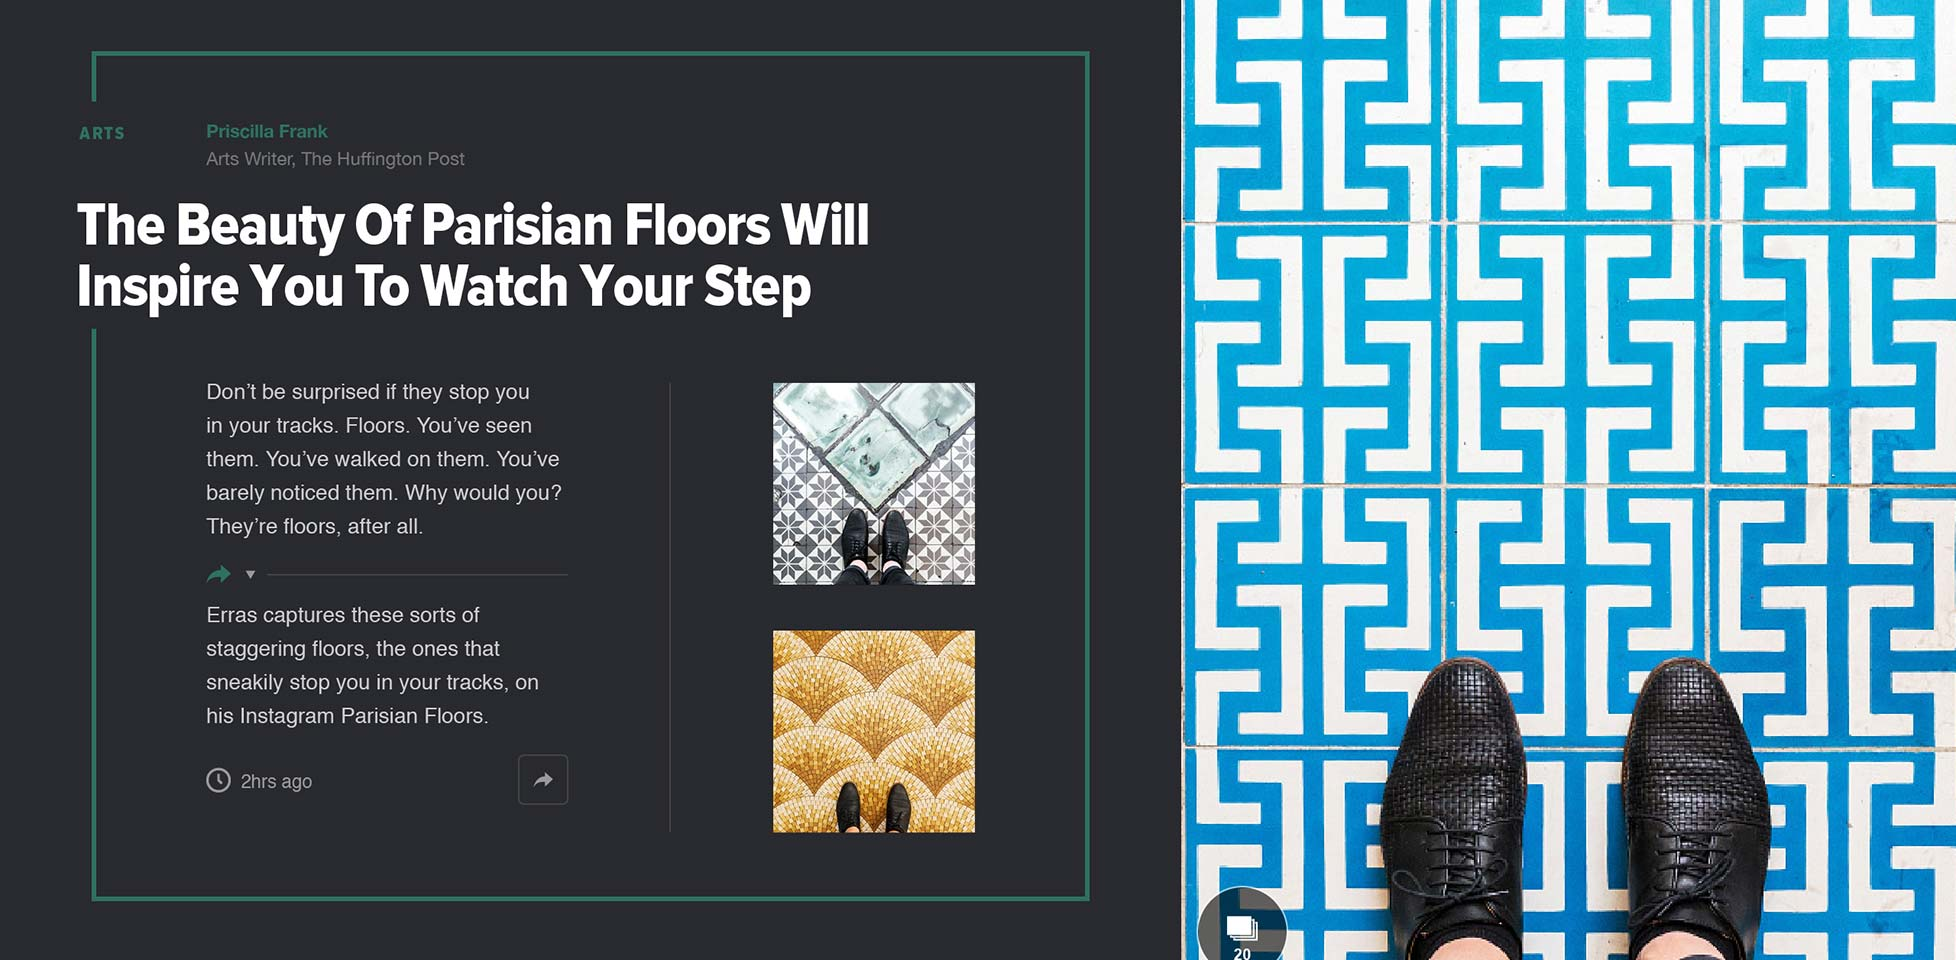 The Huffington Post debuts a bold new design